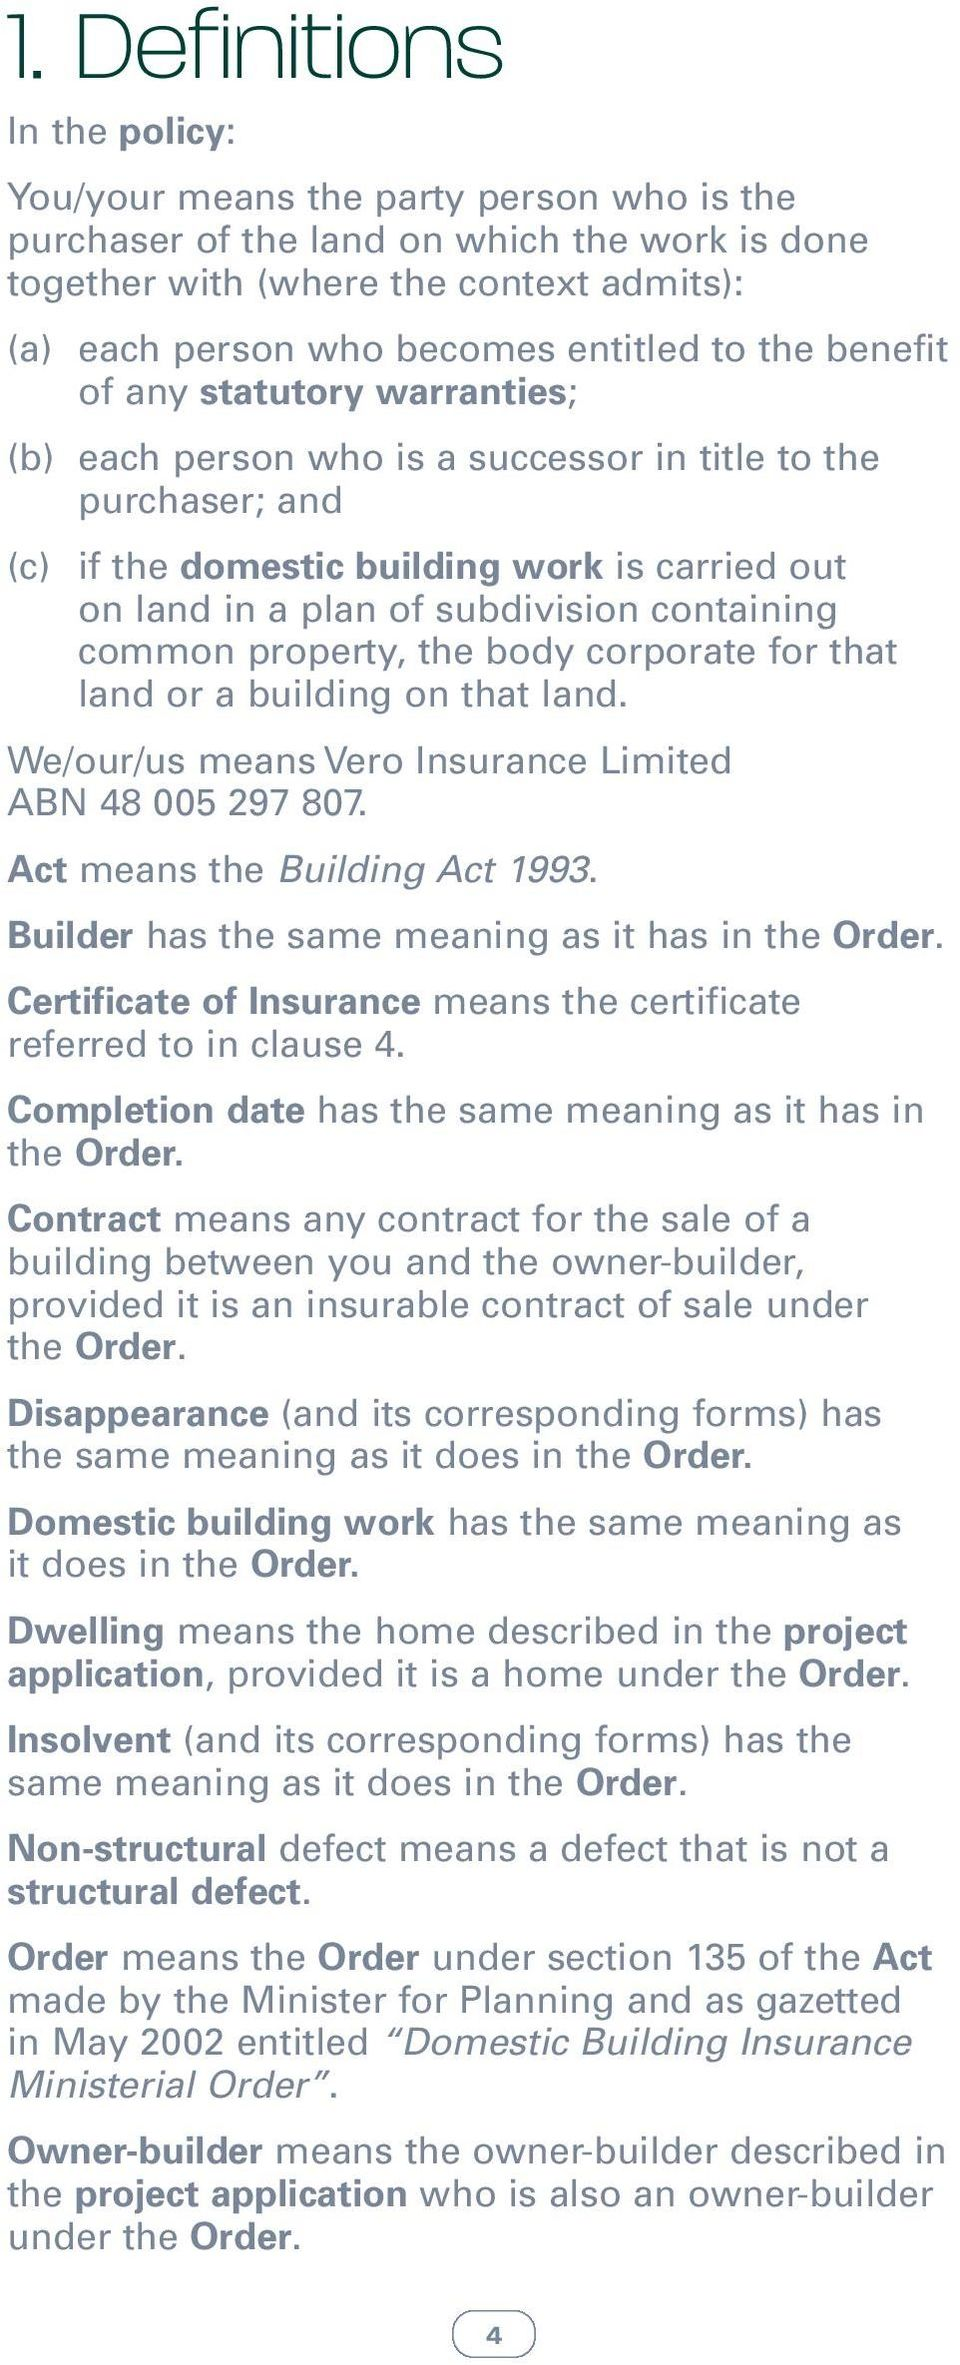 containing common property, the body corporate for that land or a building on that land. We/our/us means Vero Insurance Limited ABN 48 005 297 807. Act means the Building Act 1993.